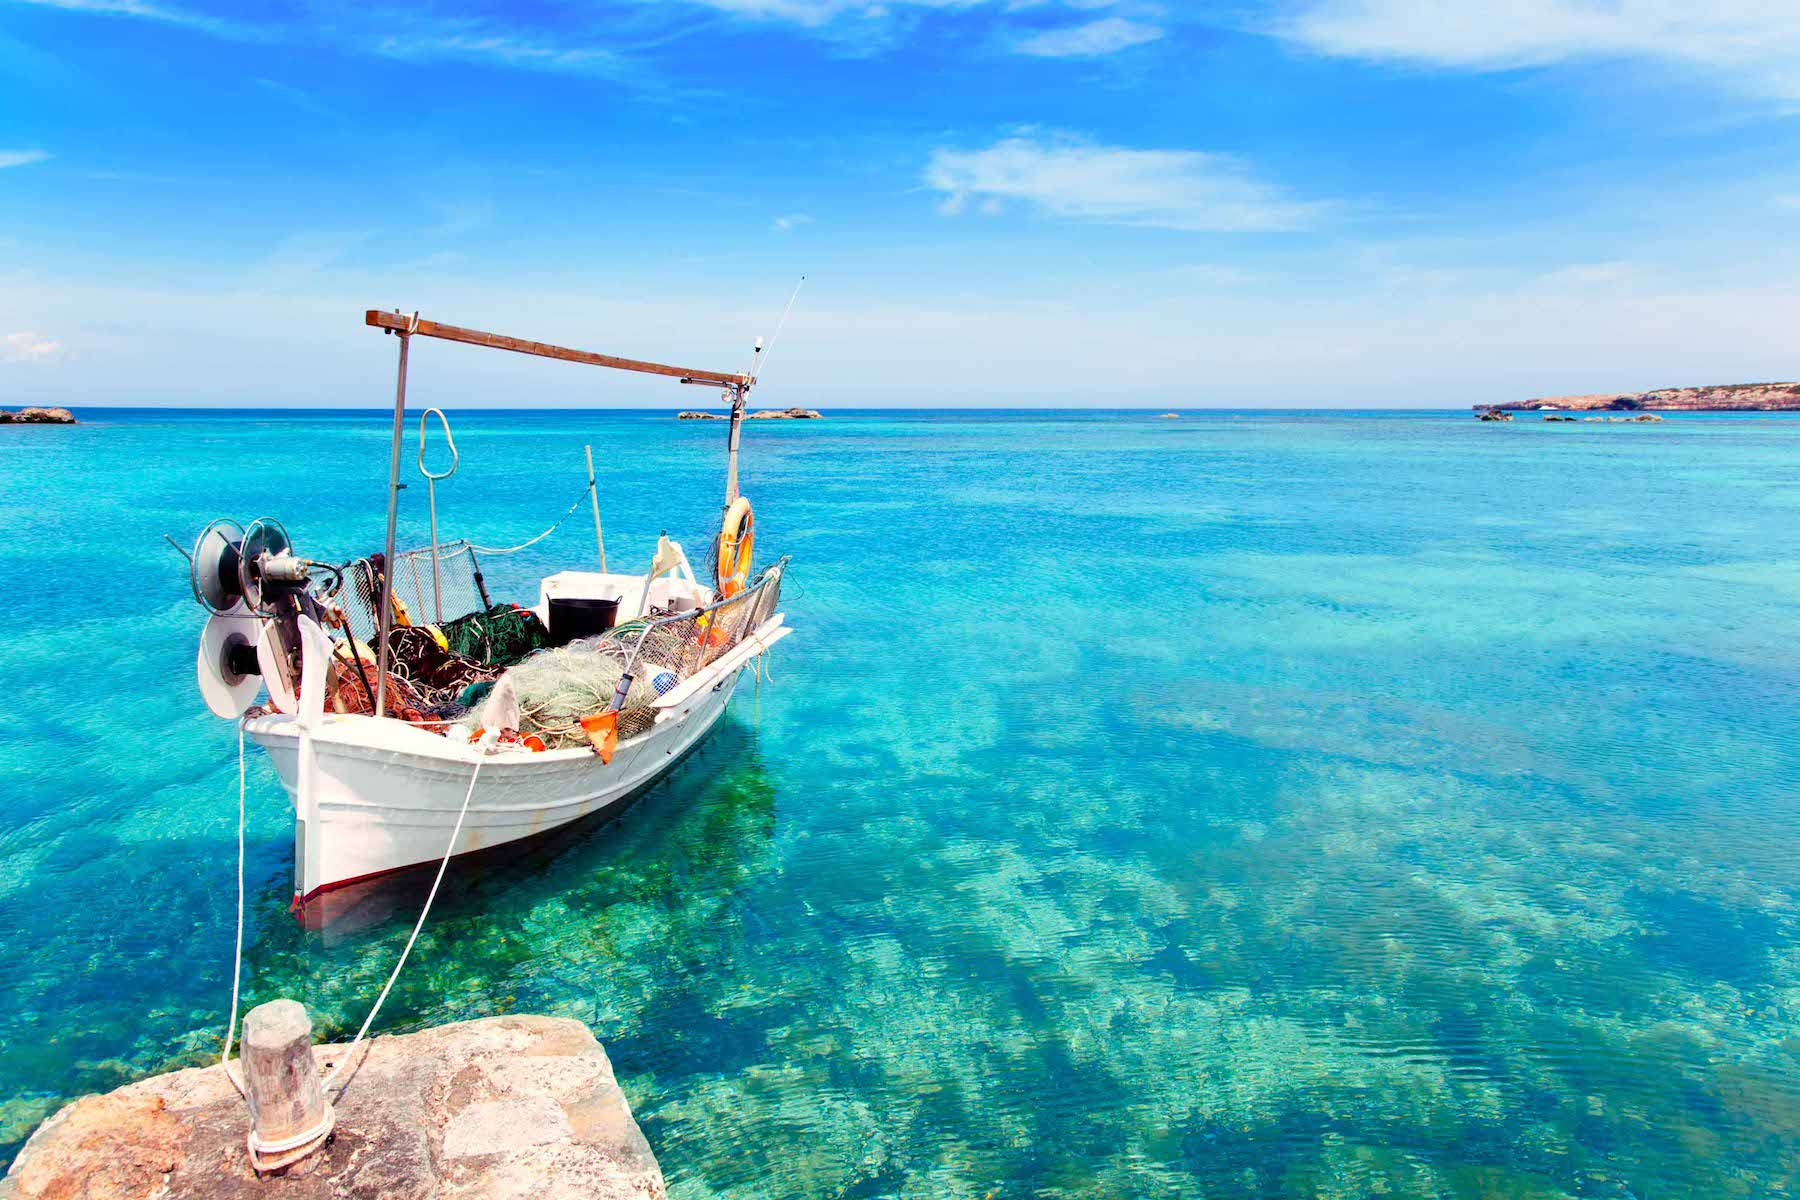 What to do in Formentera, where the Balearic paradise is located